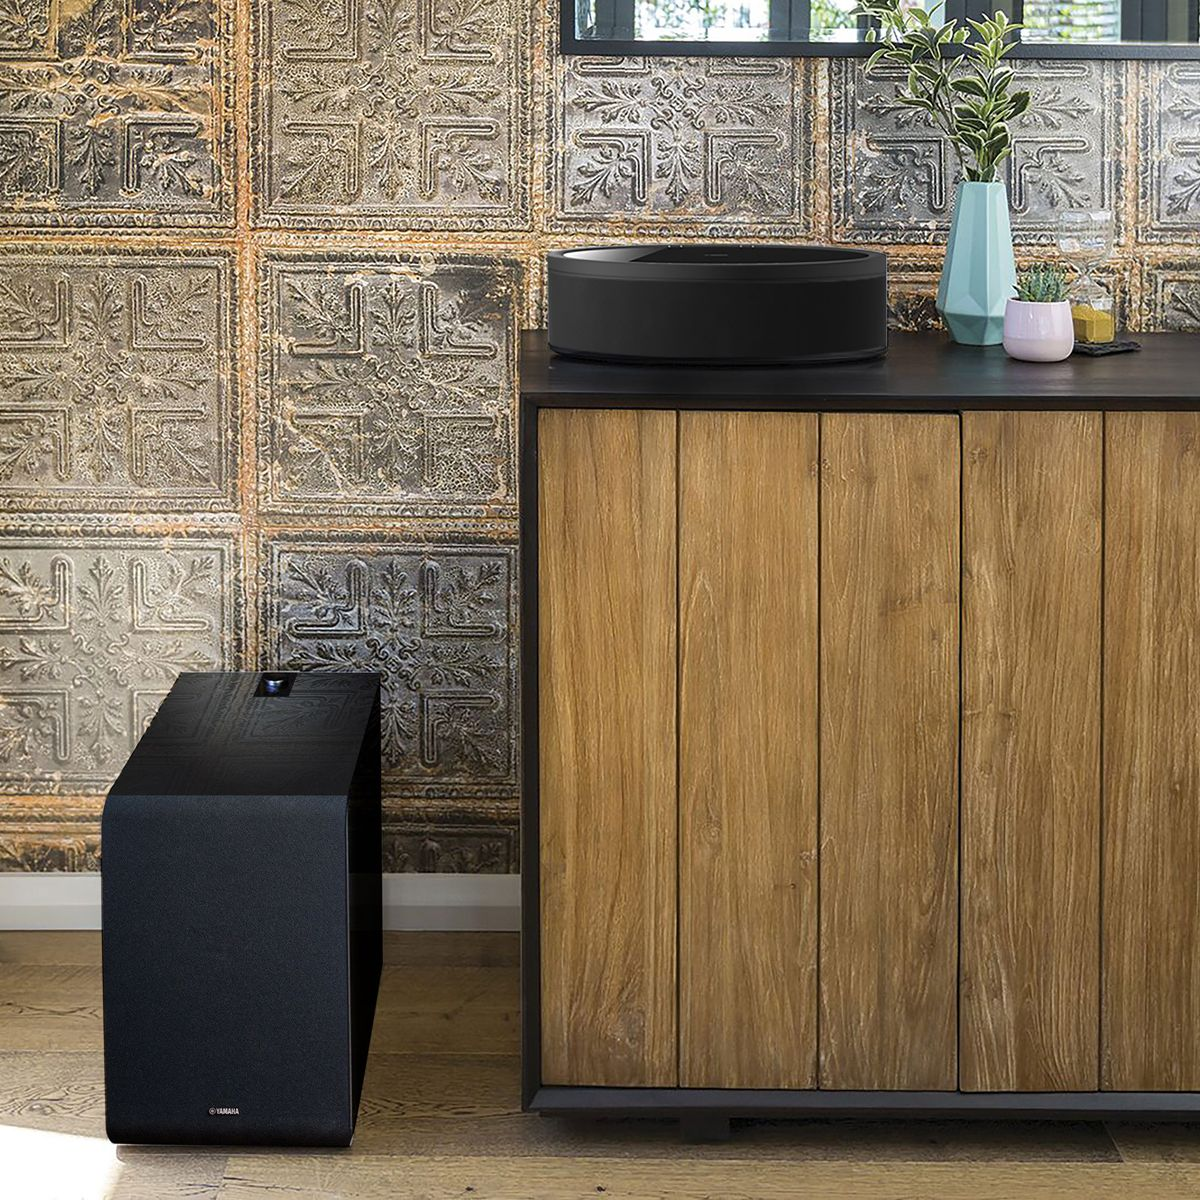 Yamaha Ditches Cables for Easy Wireless Home Theatre